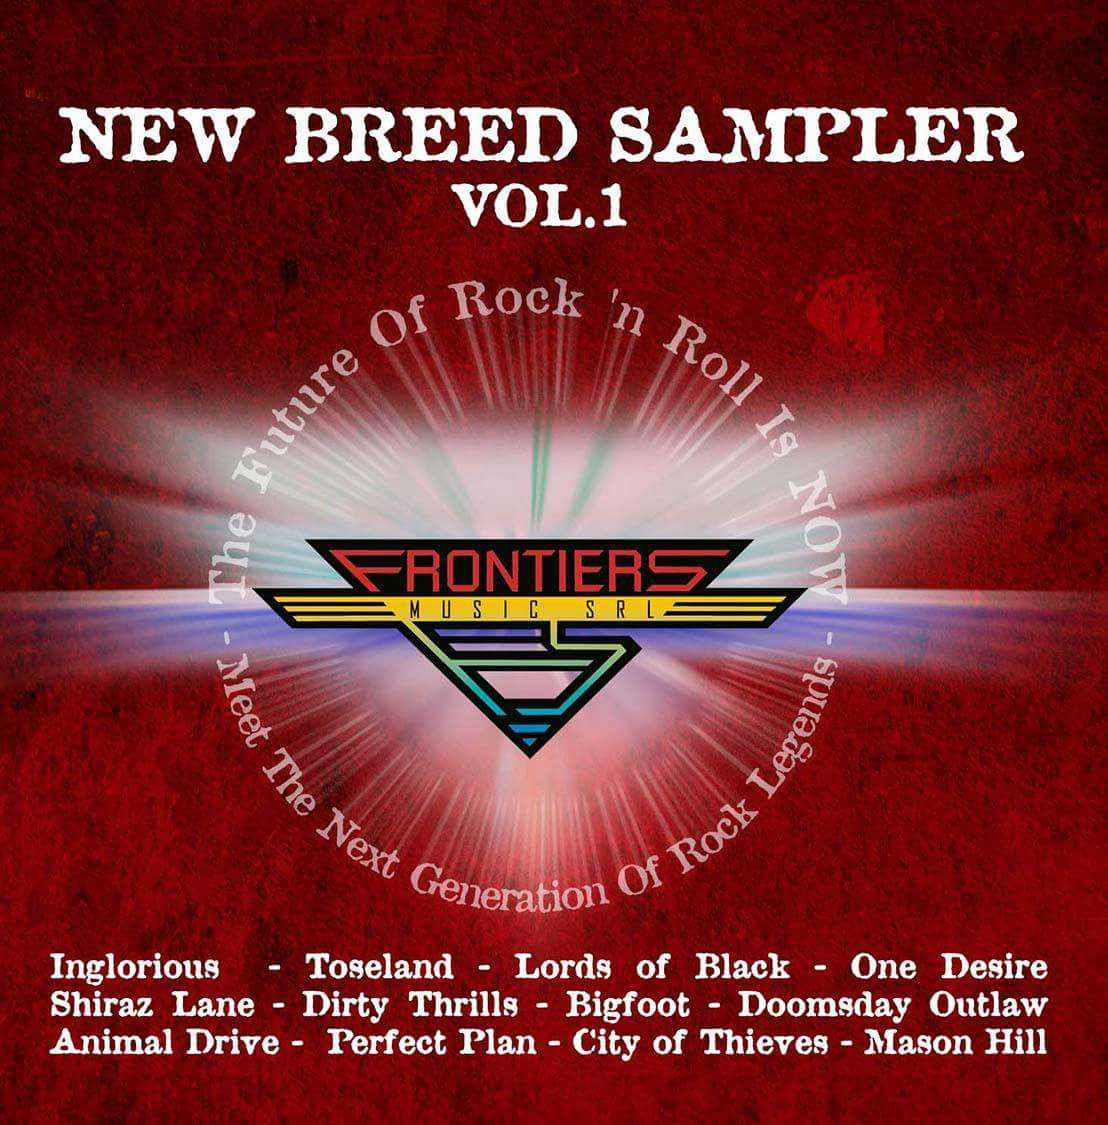 Frontiers New Breed